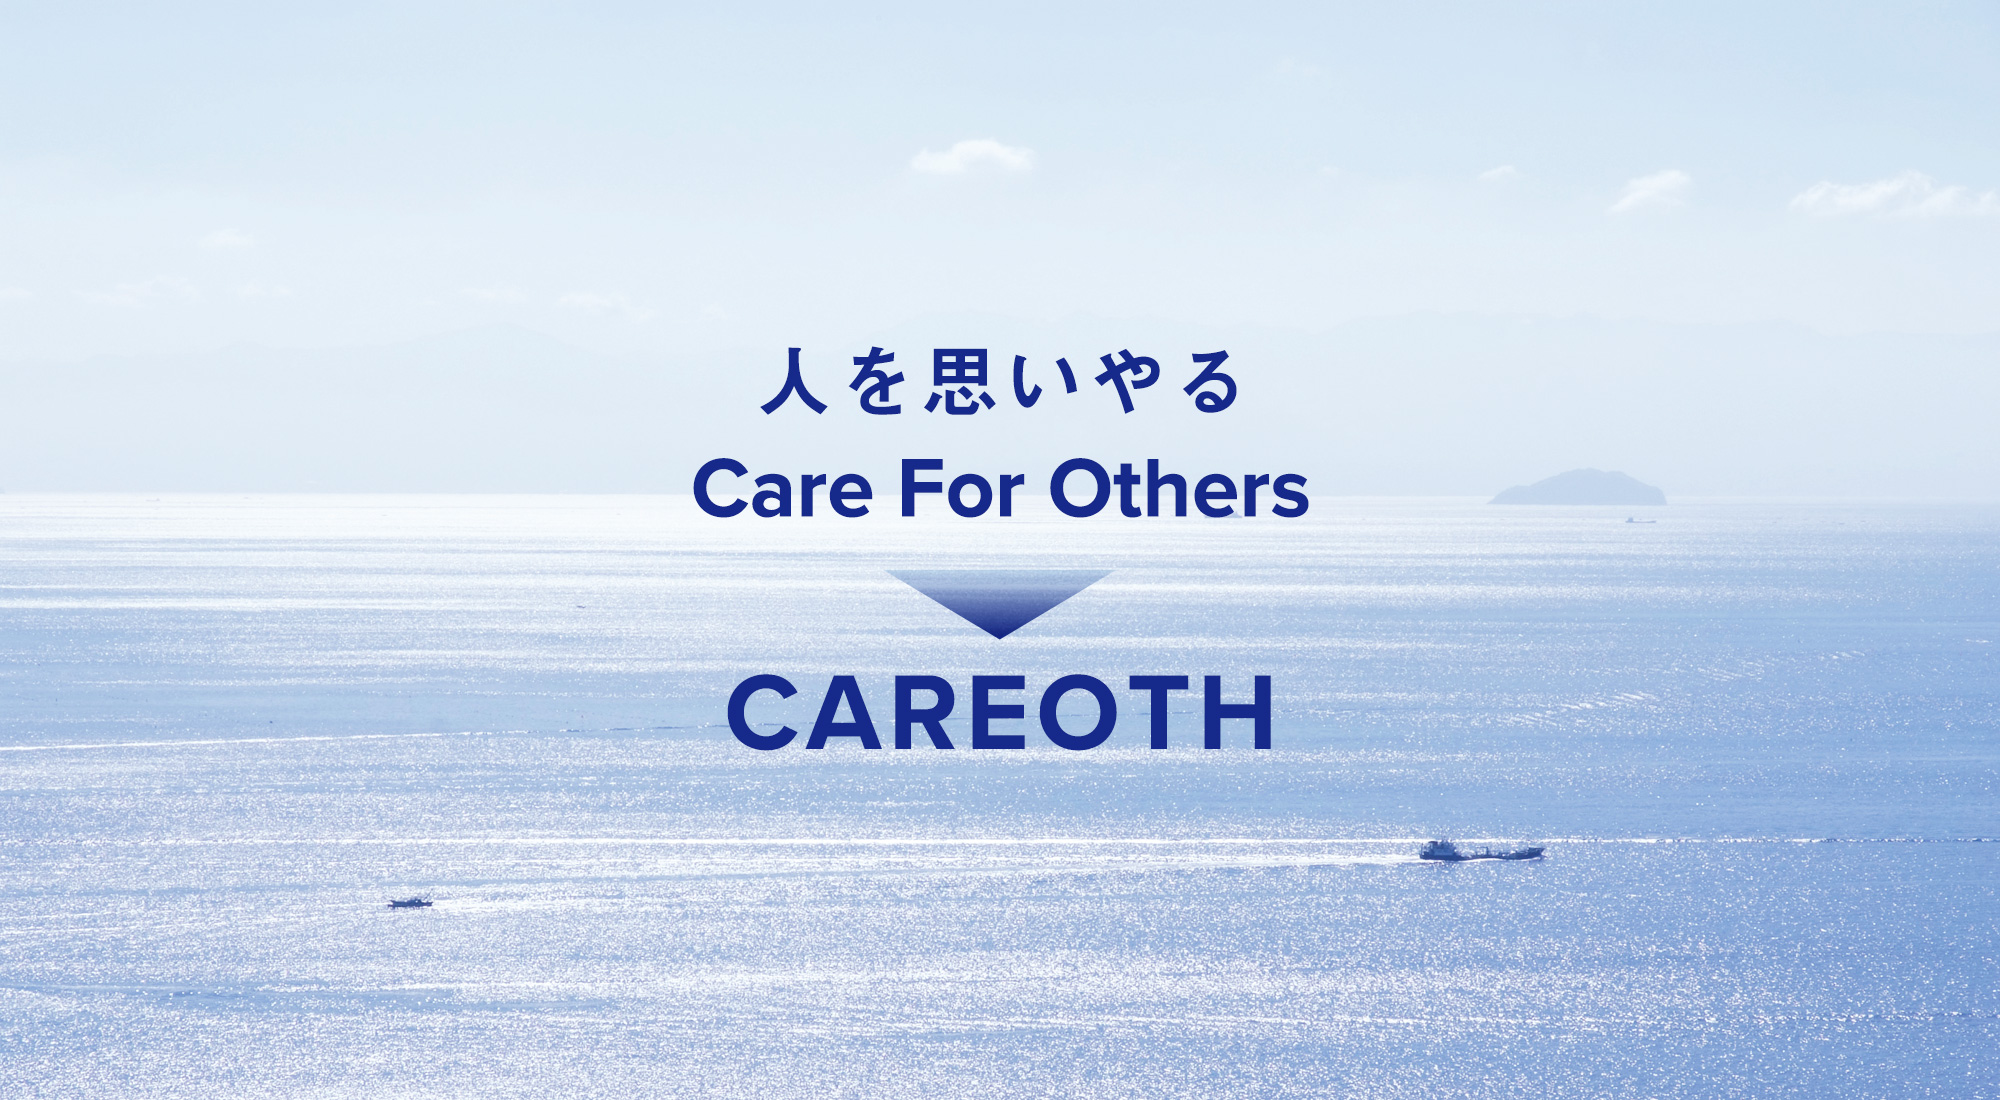 CARE FOR OTHERS→CAREOTH